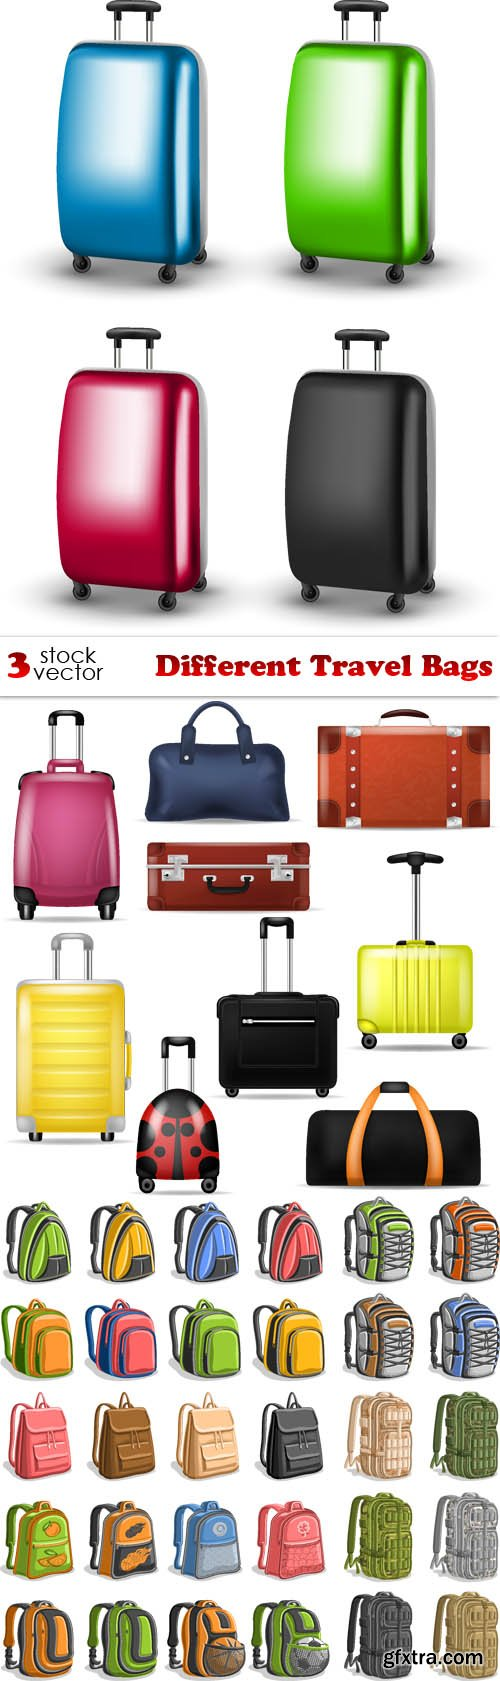 Vectors - Different Travel Bags